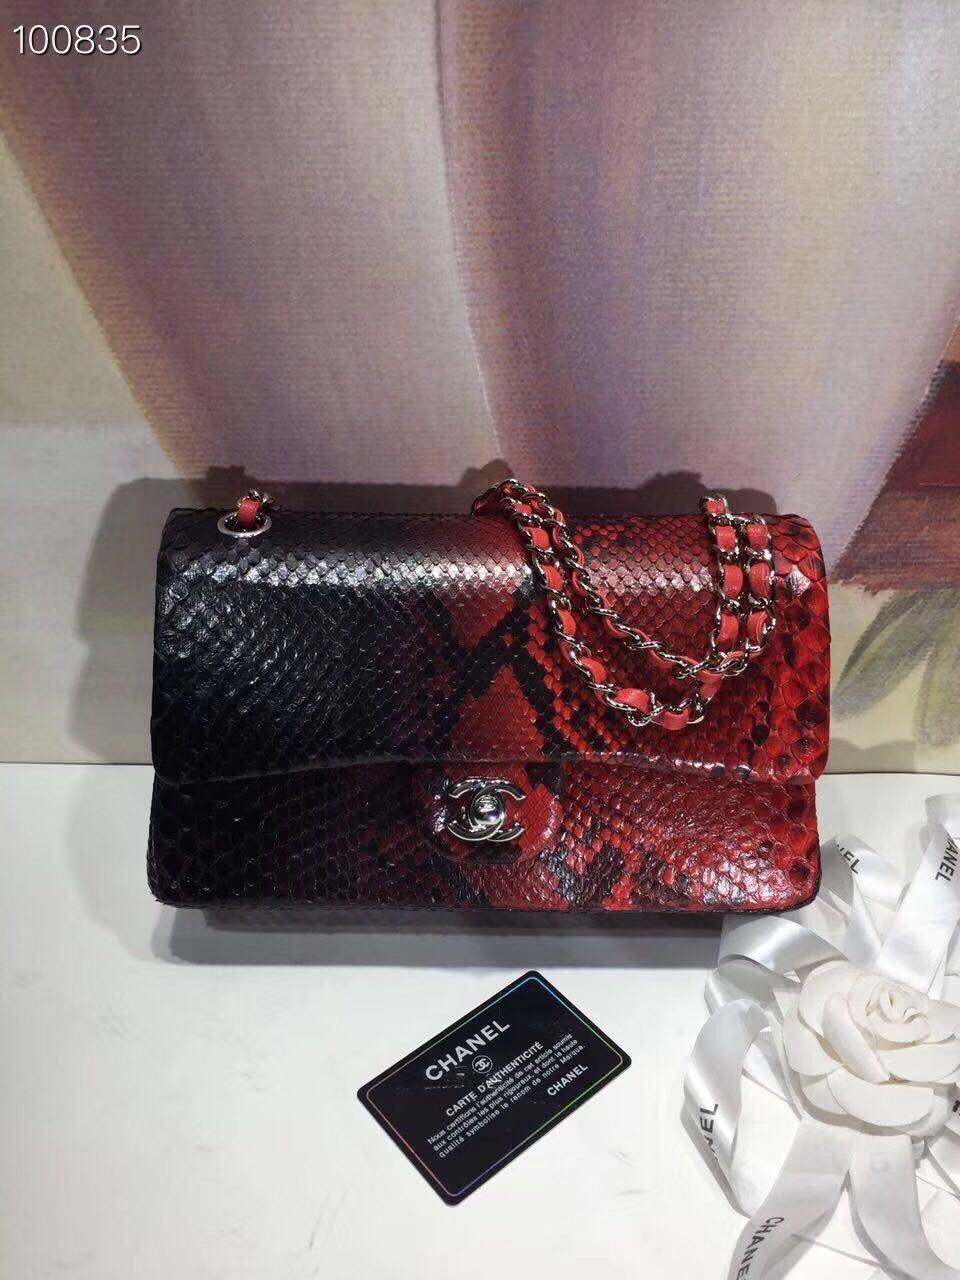 Chanel Classic Handbag Python Leather A01112 Black&Red